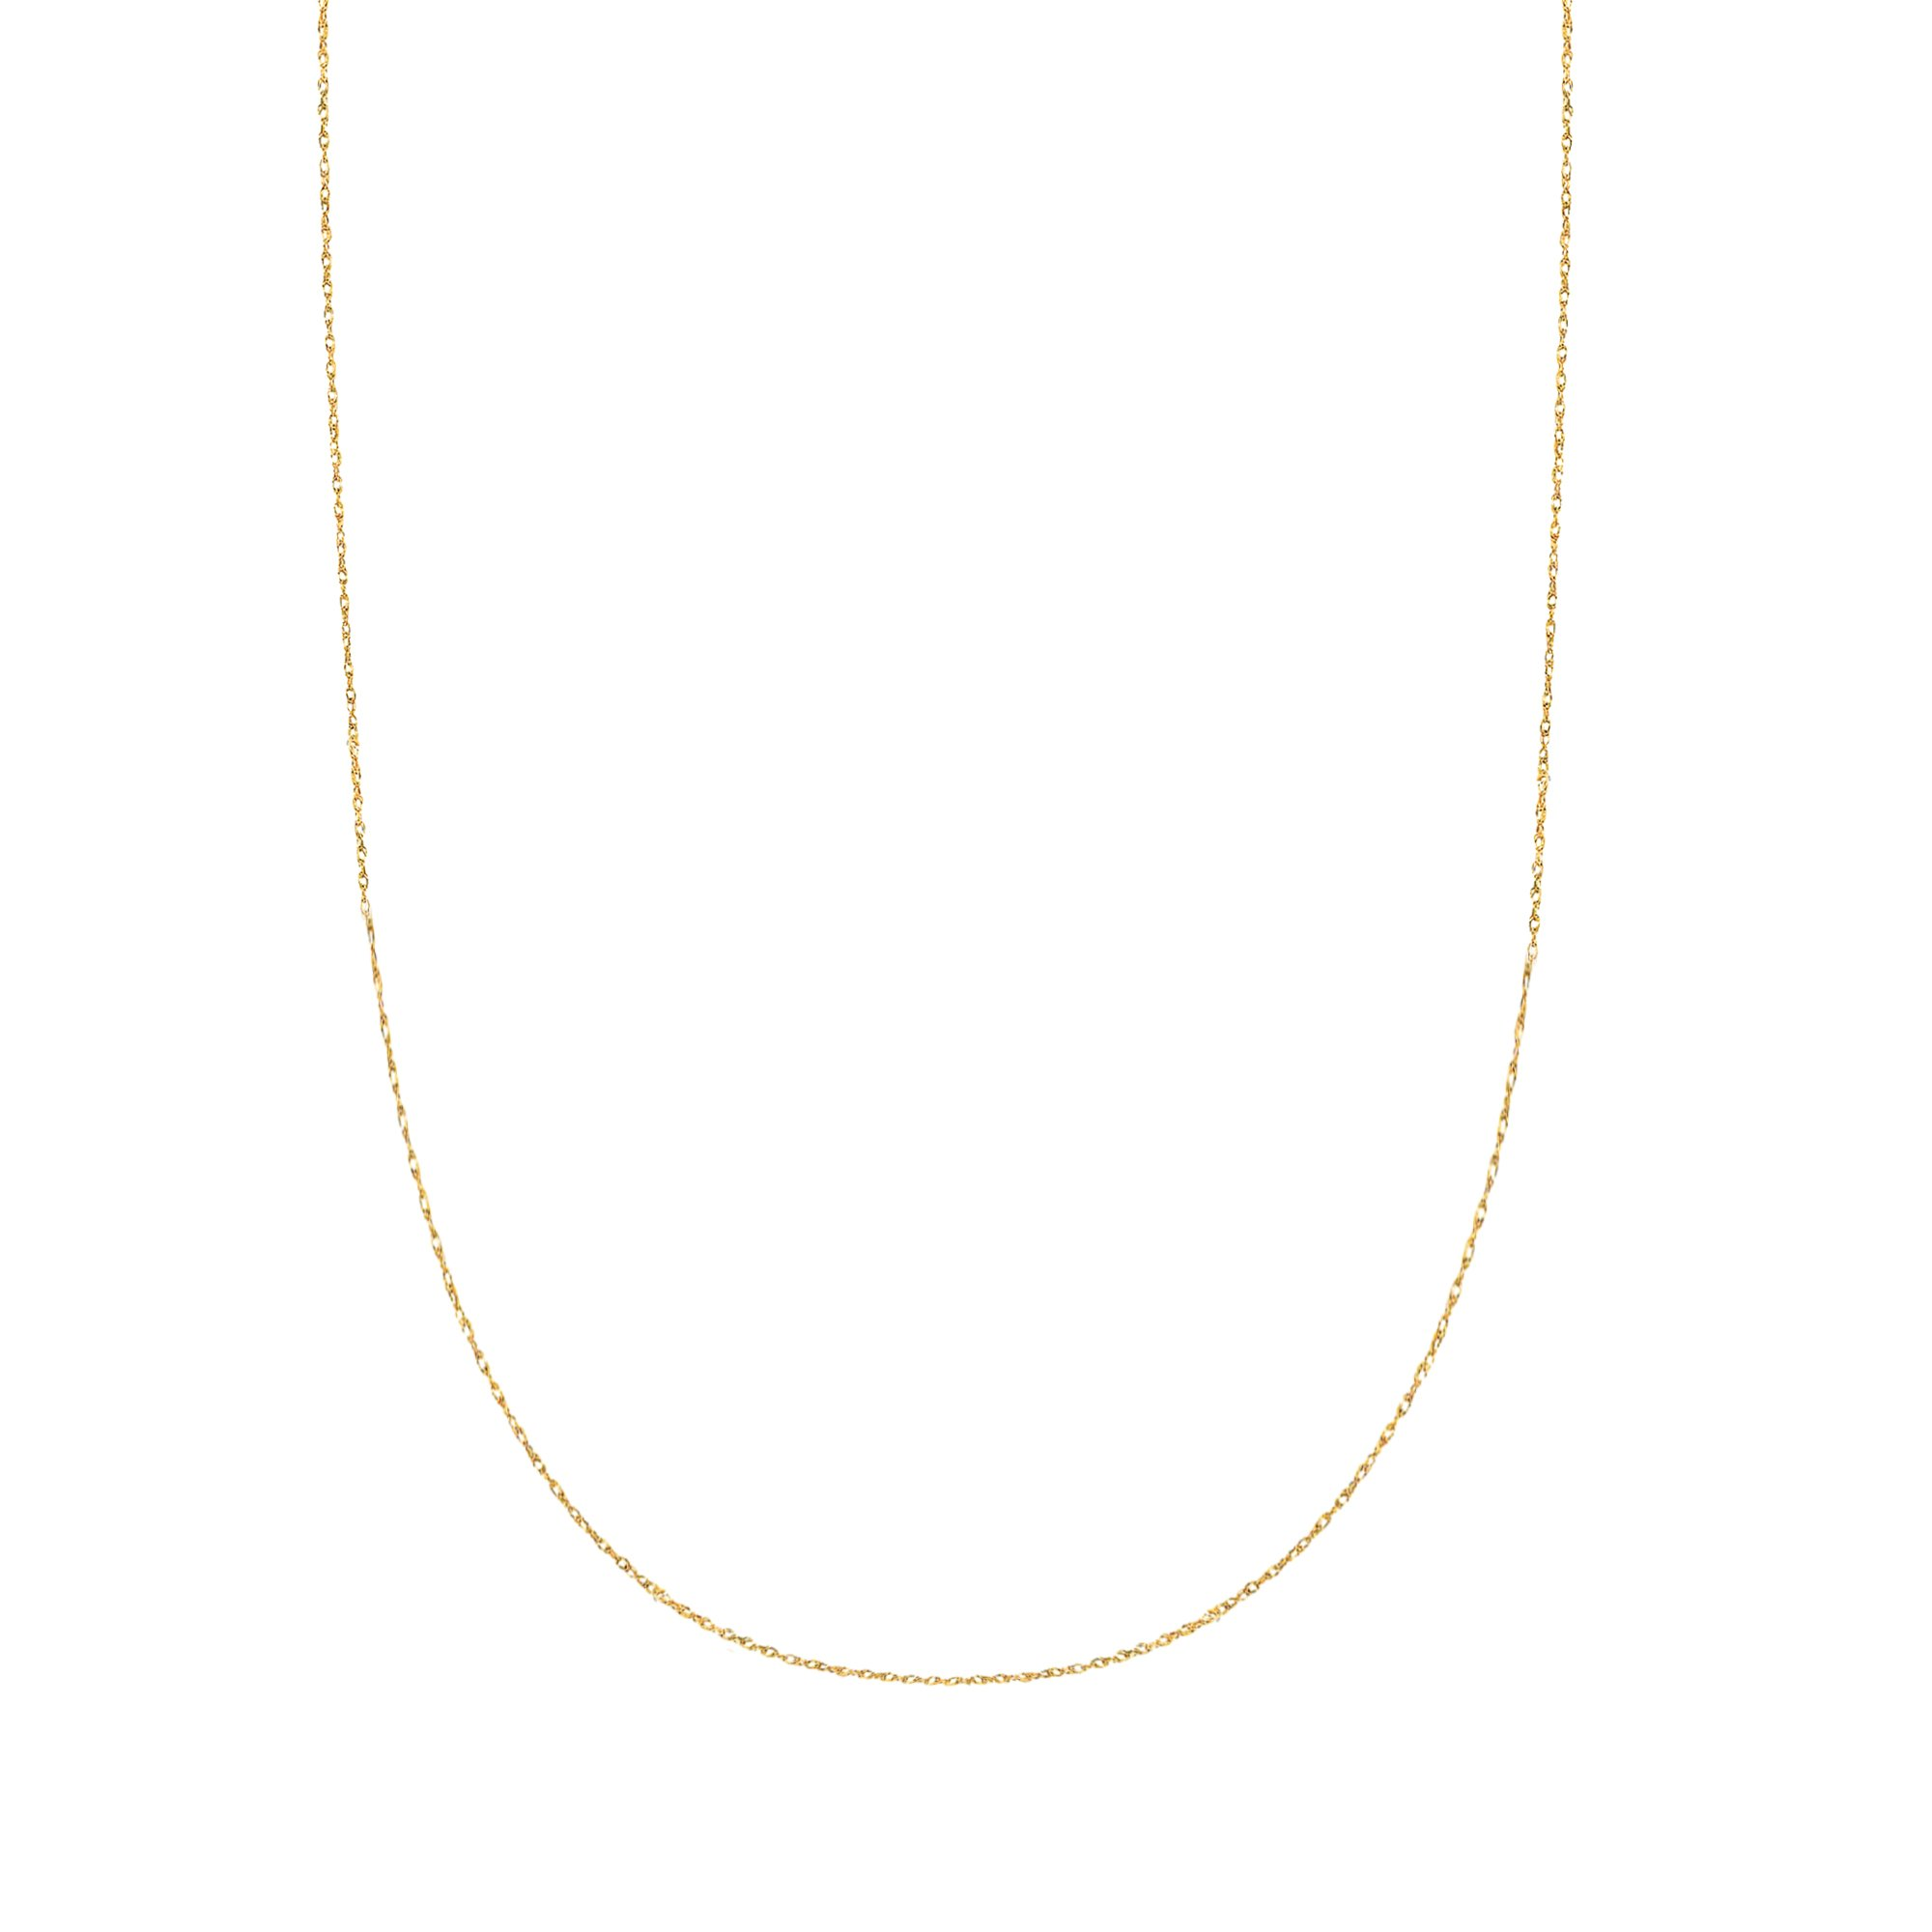 10K Solid Yellow Gold Lite Pendant Rope Chain Necklace 18 Inches by Ritastephens